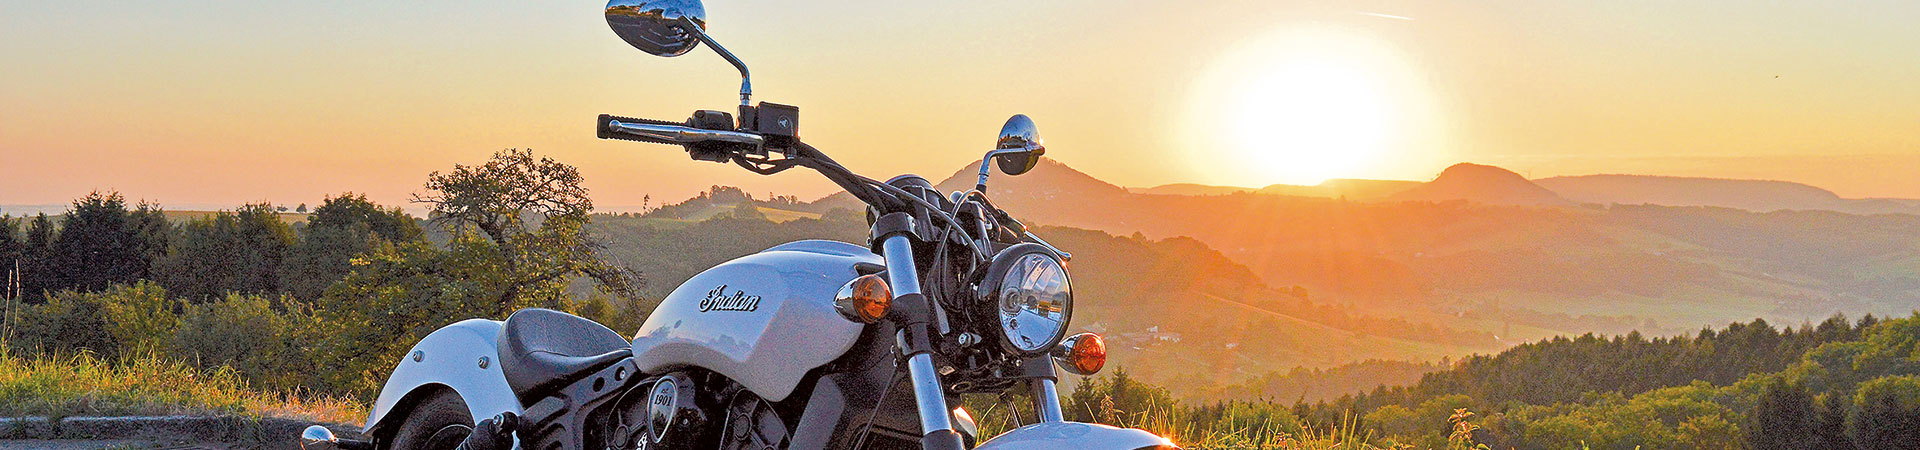 Indian-Scout-Sixty